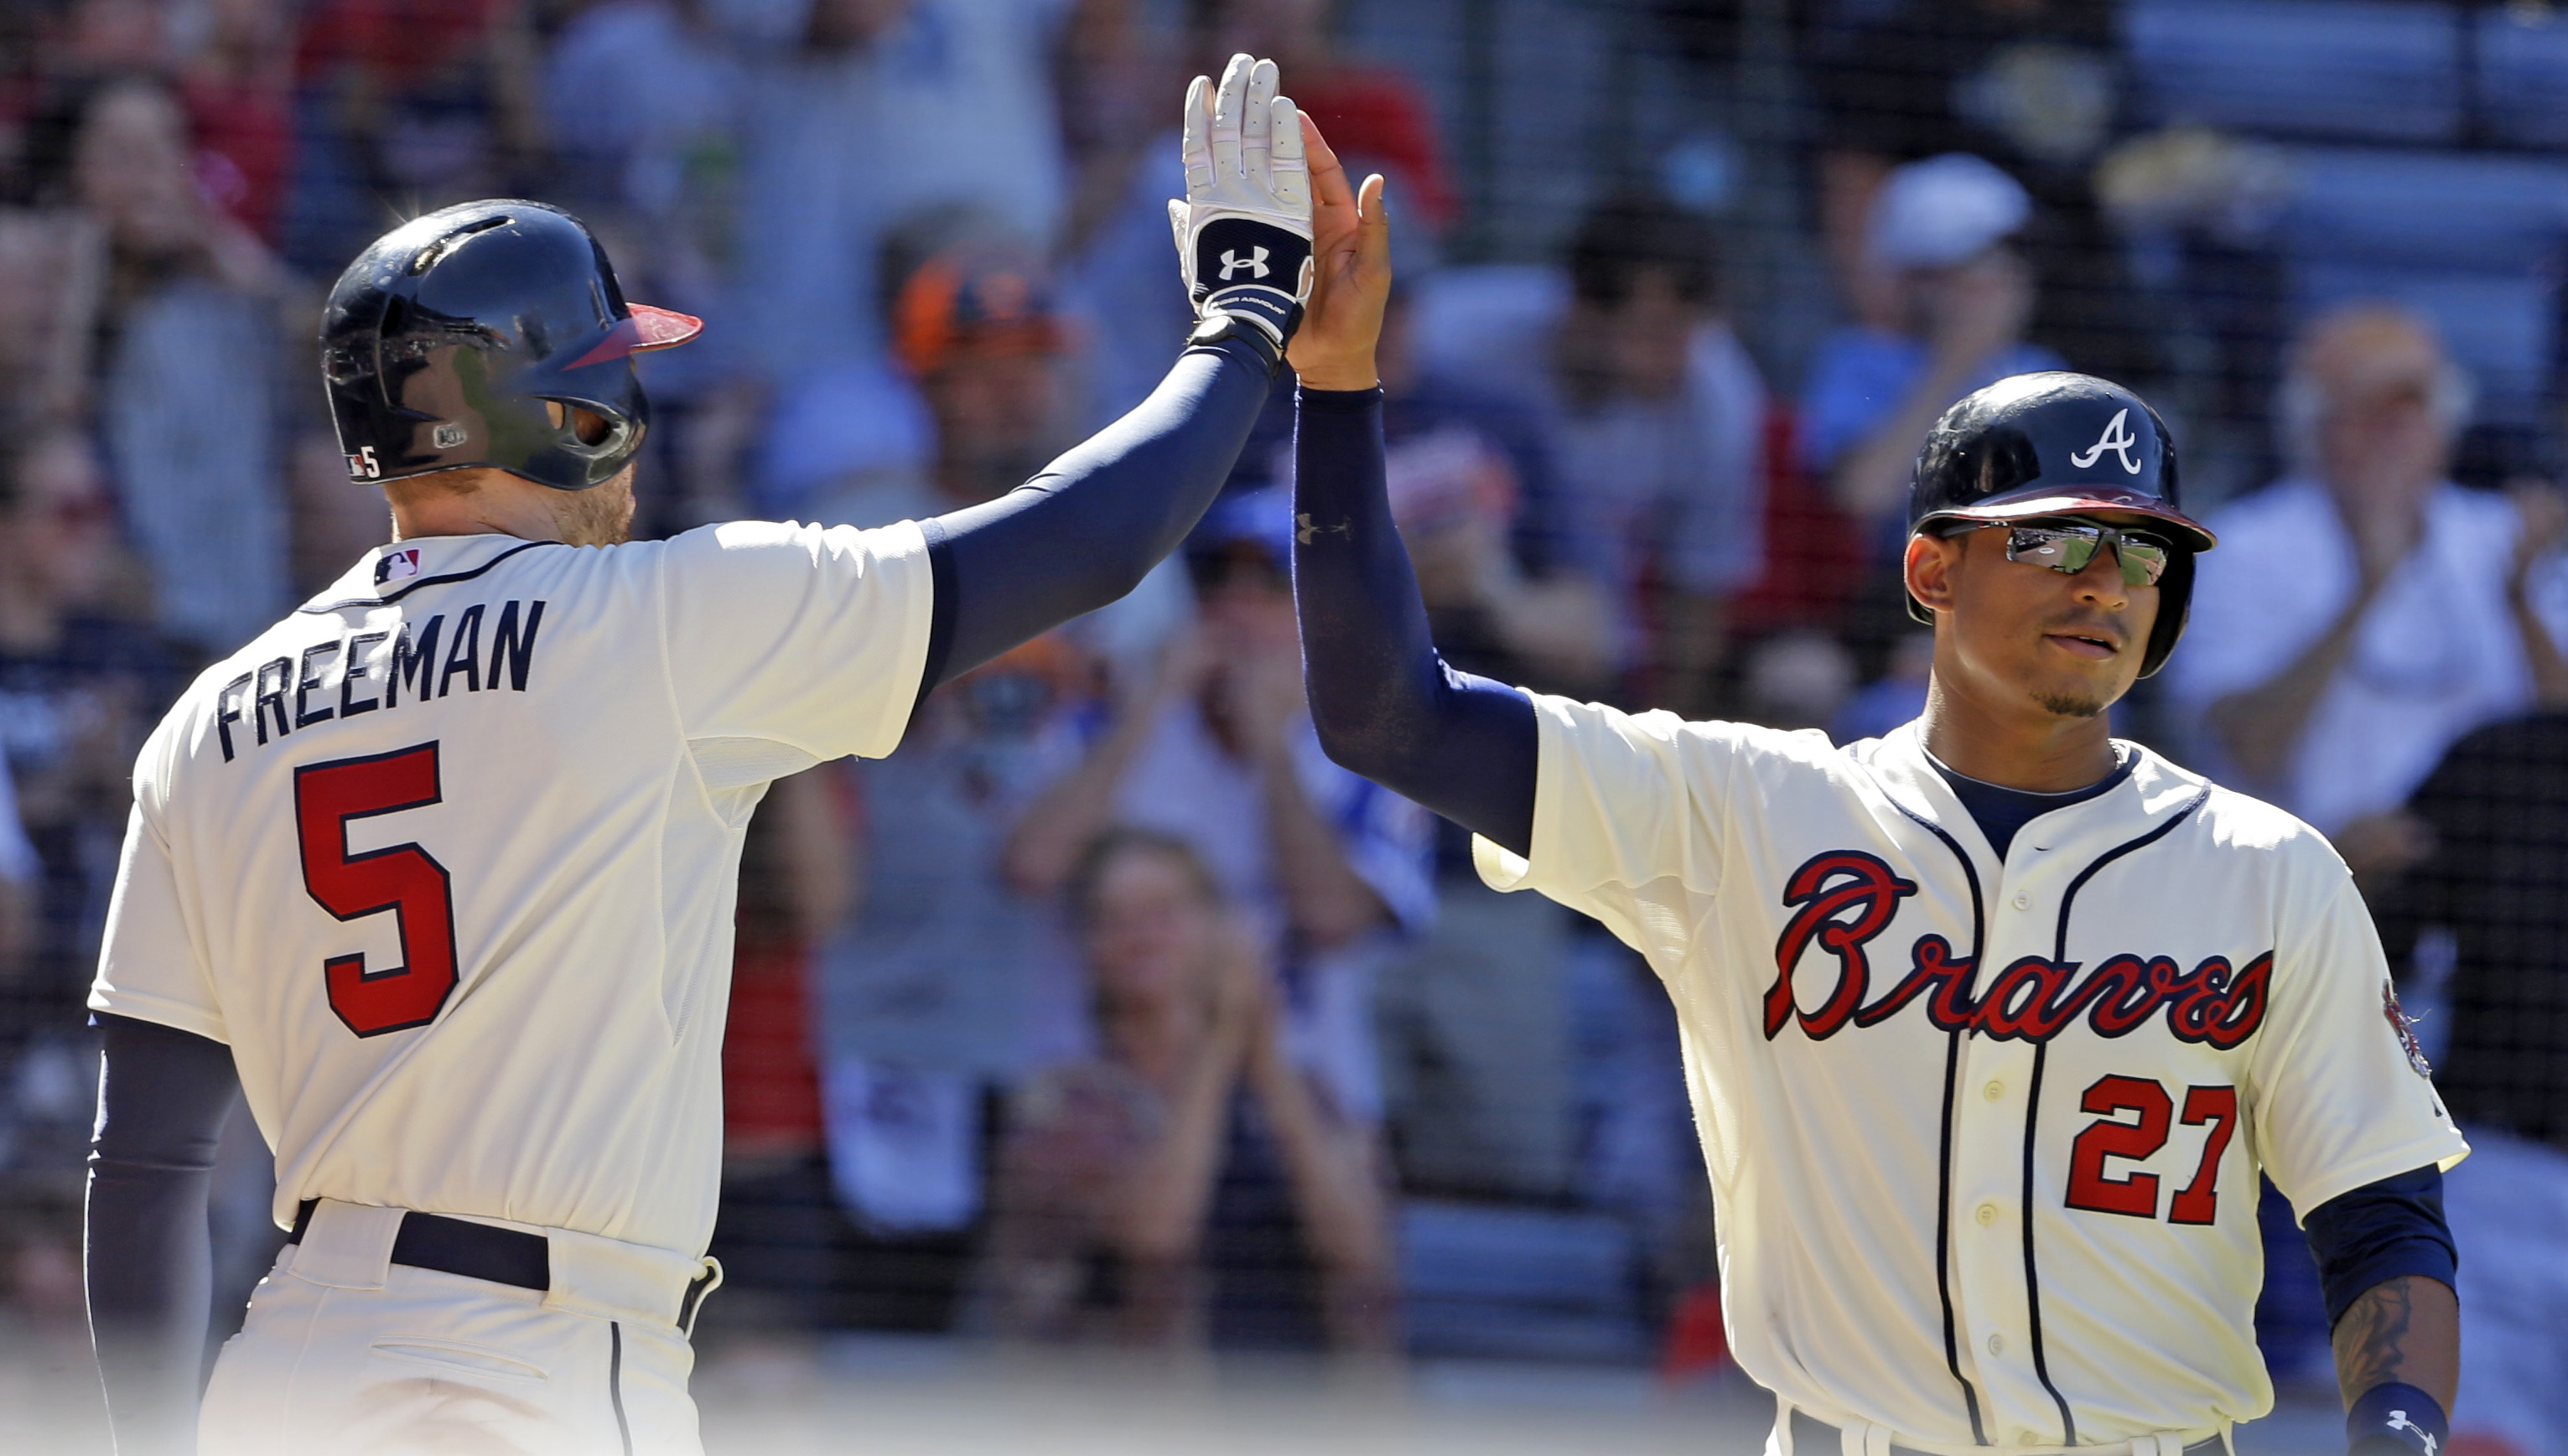 Atlanta Braves' Christian Bethancourt (27) celebrates with teammate Freddie Freeman (5) after scoring a run during the eighth inning of a baseball game against the New York Mets, Sunday, Sept. 13, 2015, in Atlanta. (AP Photo/Butch Dill)